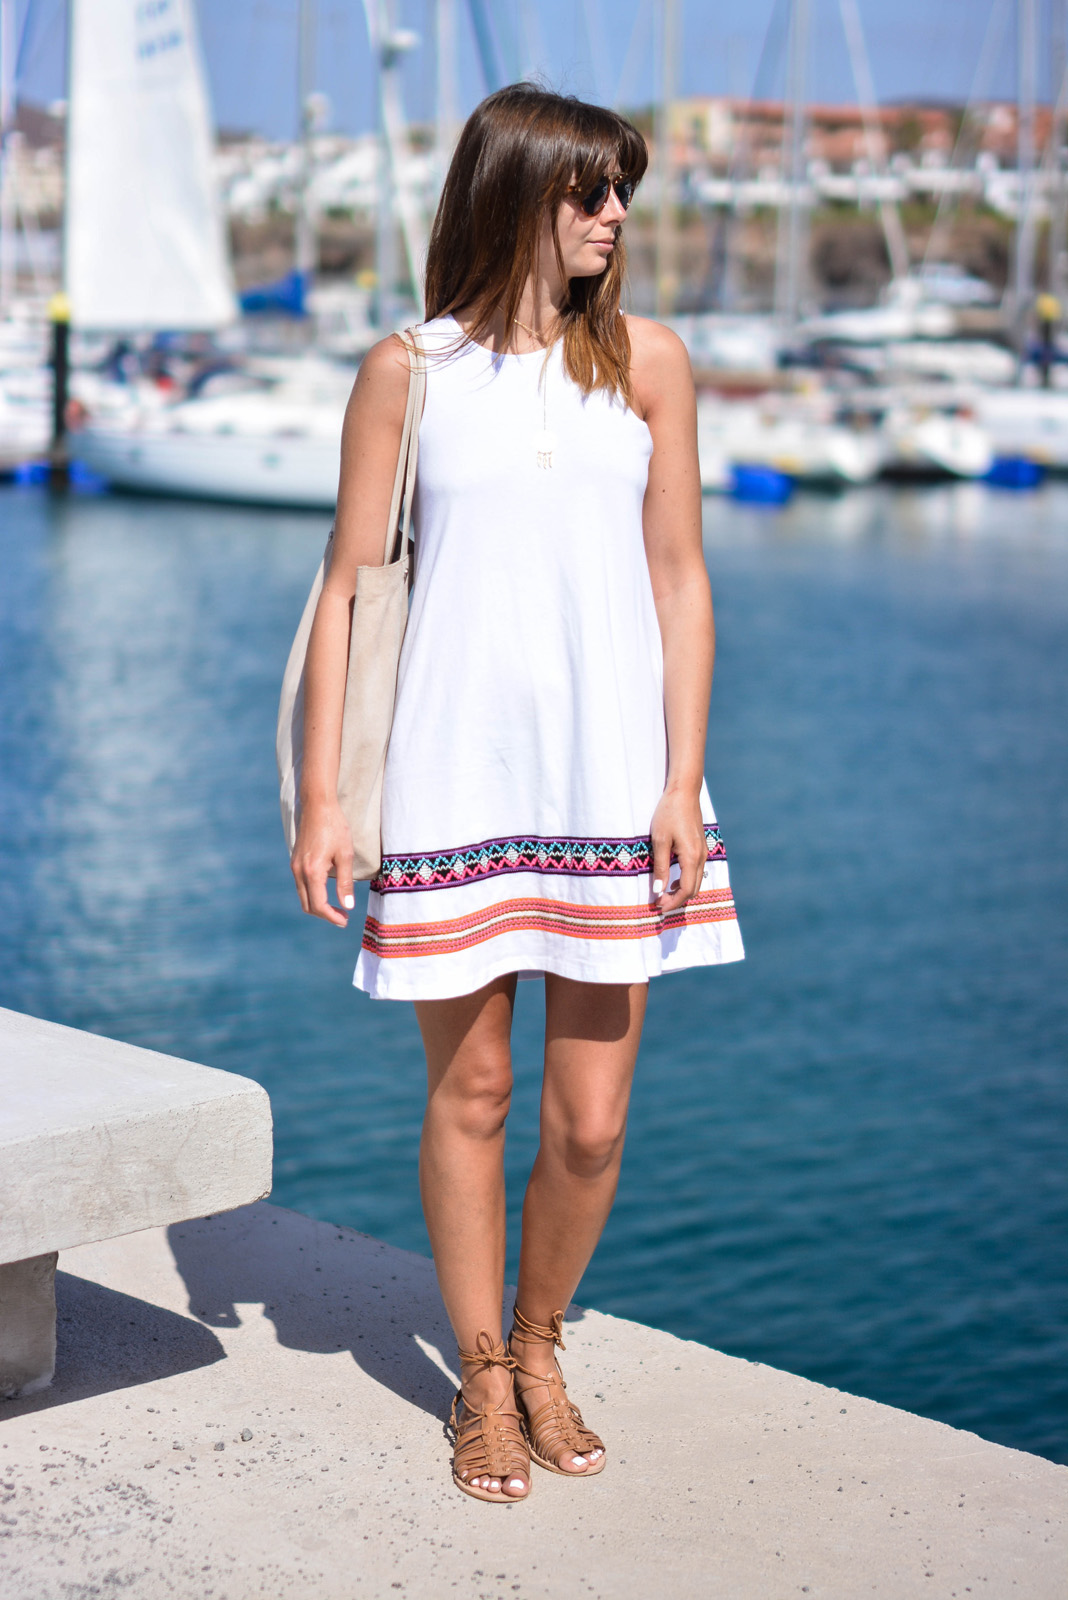 EJSTYLE - Emma Hill Wears ASOS white swing dress, ASOS tan grecian sandals, ASOS beige suede leather bag, ASOS sunglasses, summer style, Holiday, vacation